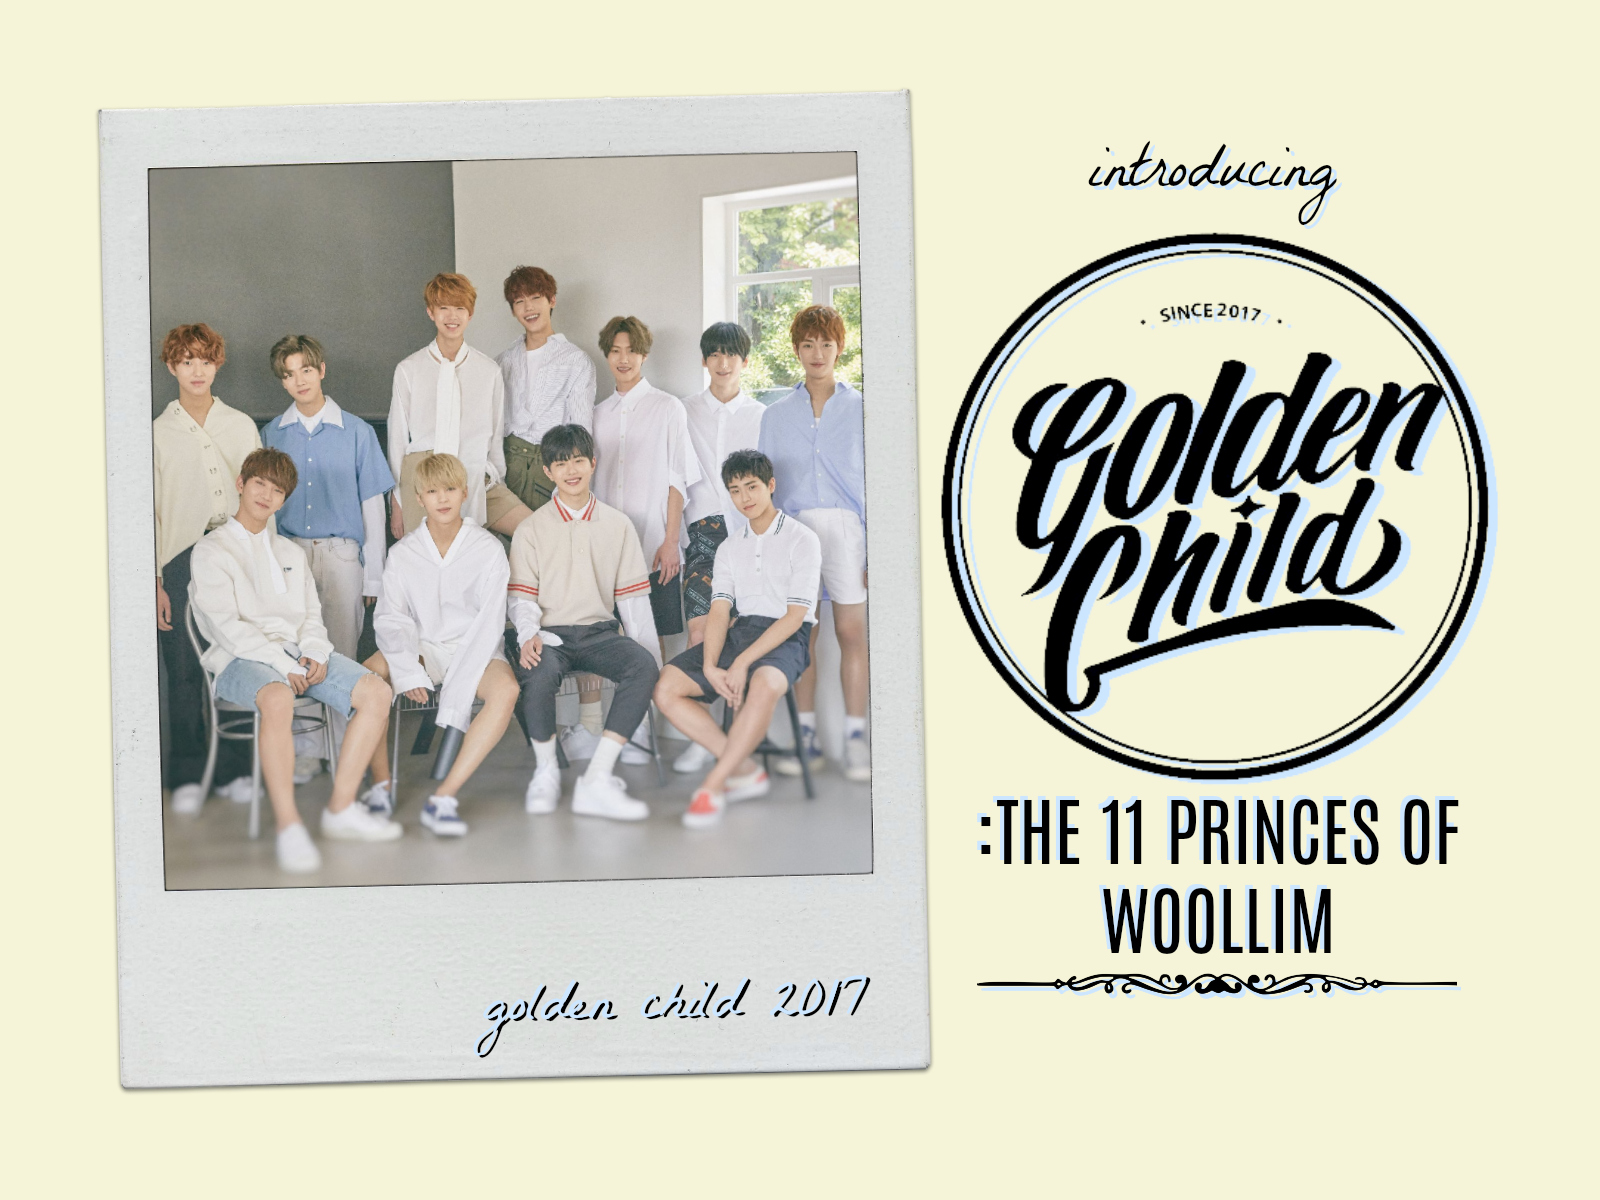 Introducing Golden Child: The 11 Princes of Woollim - OH! Press